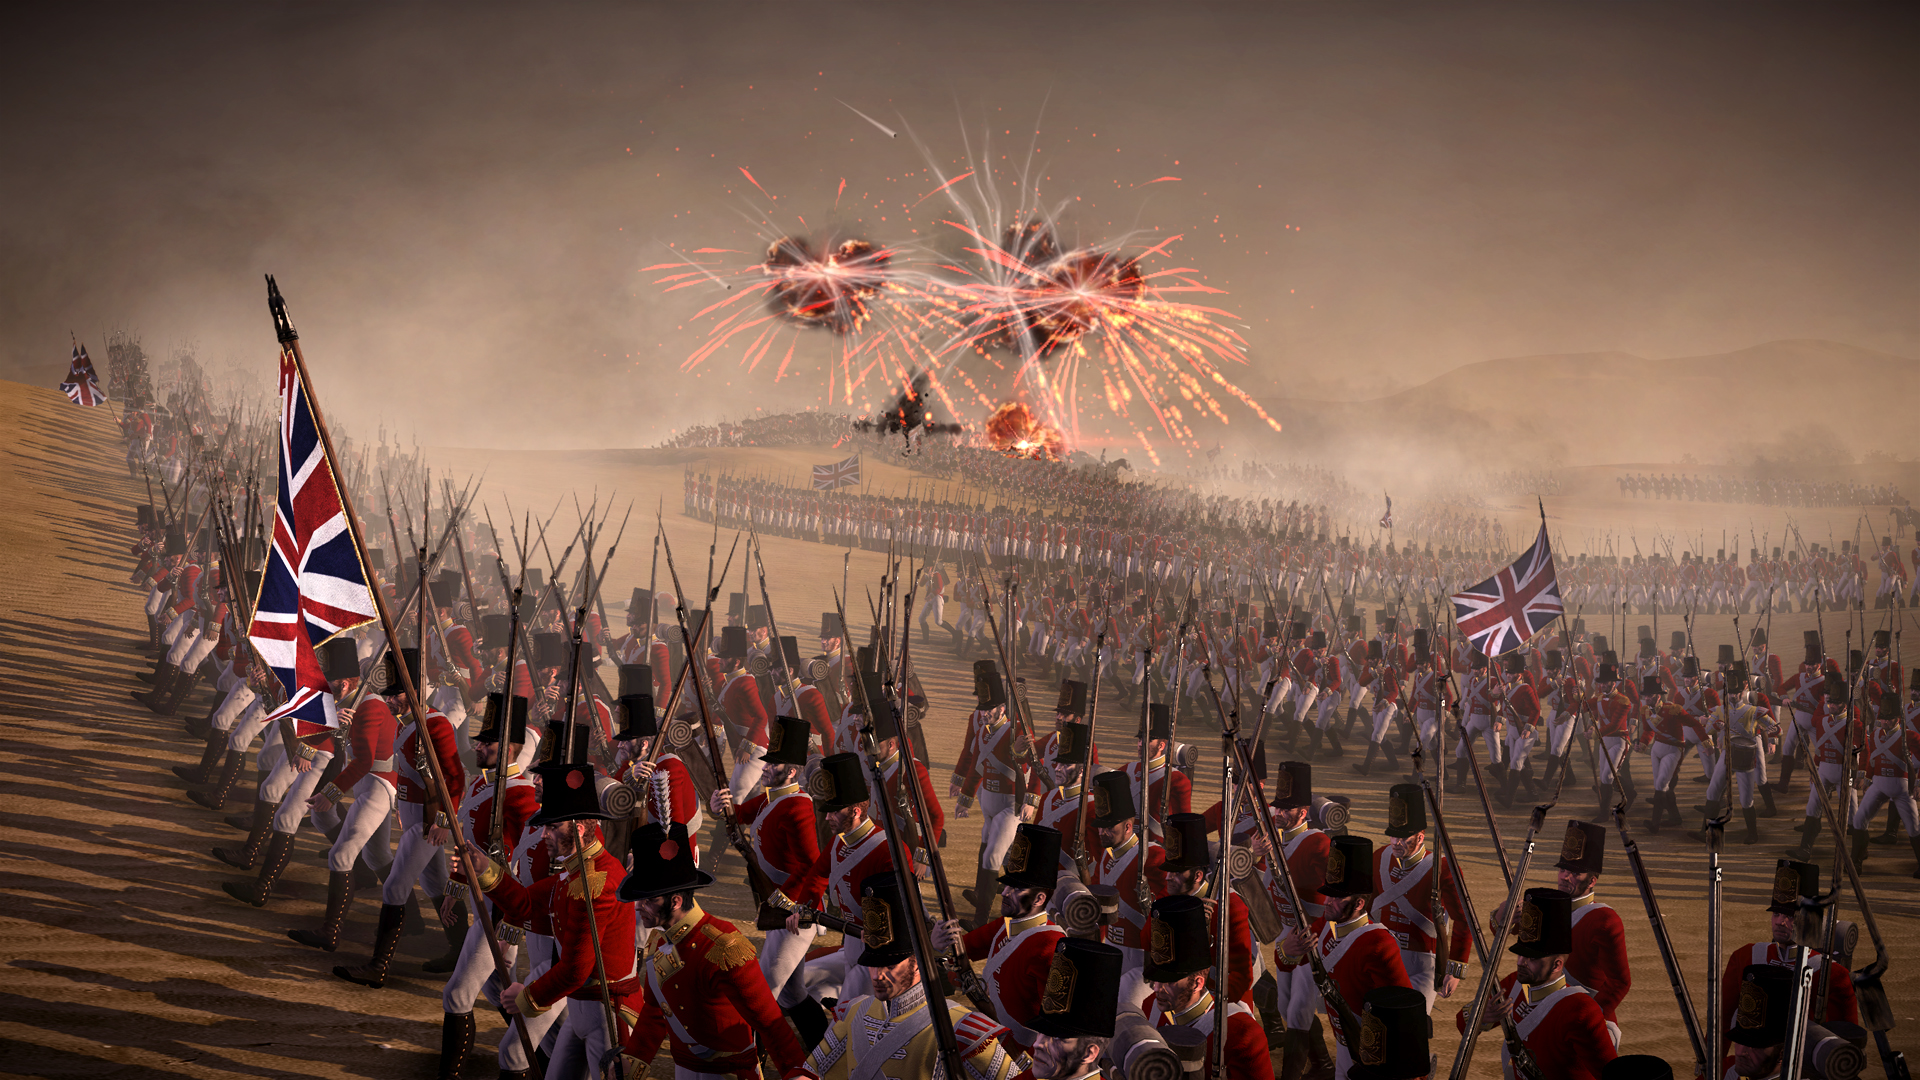 2015 By Stephen Comments Off on Napoleon Total War Wallpapers 1920x1080